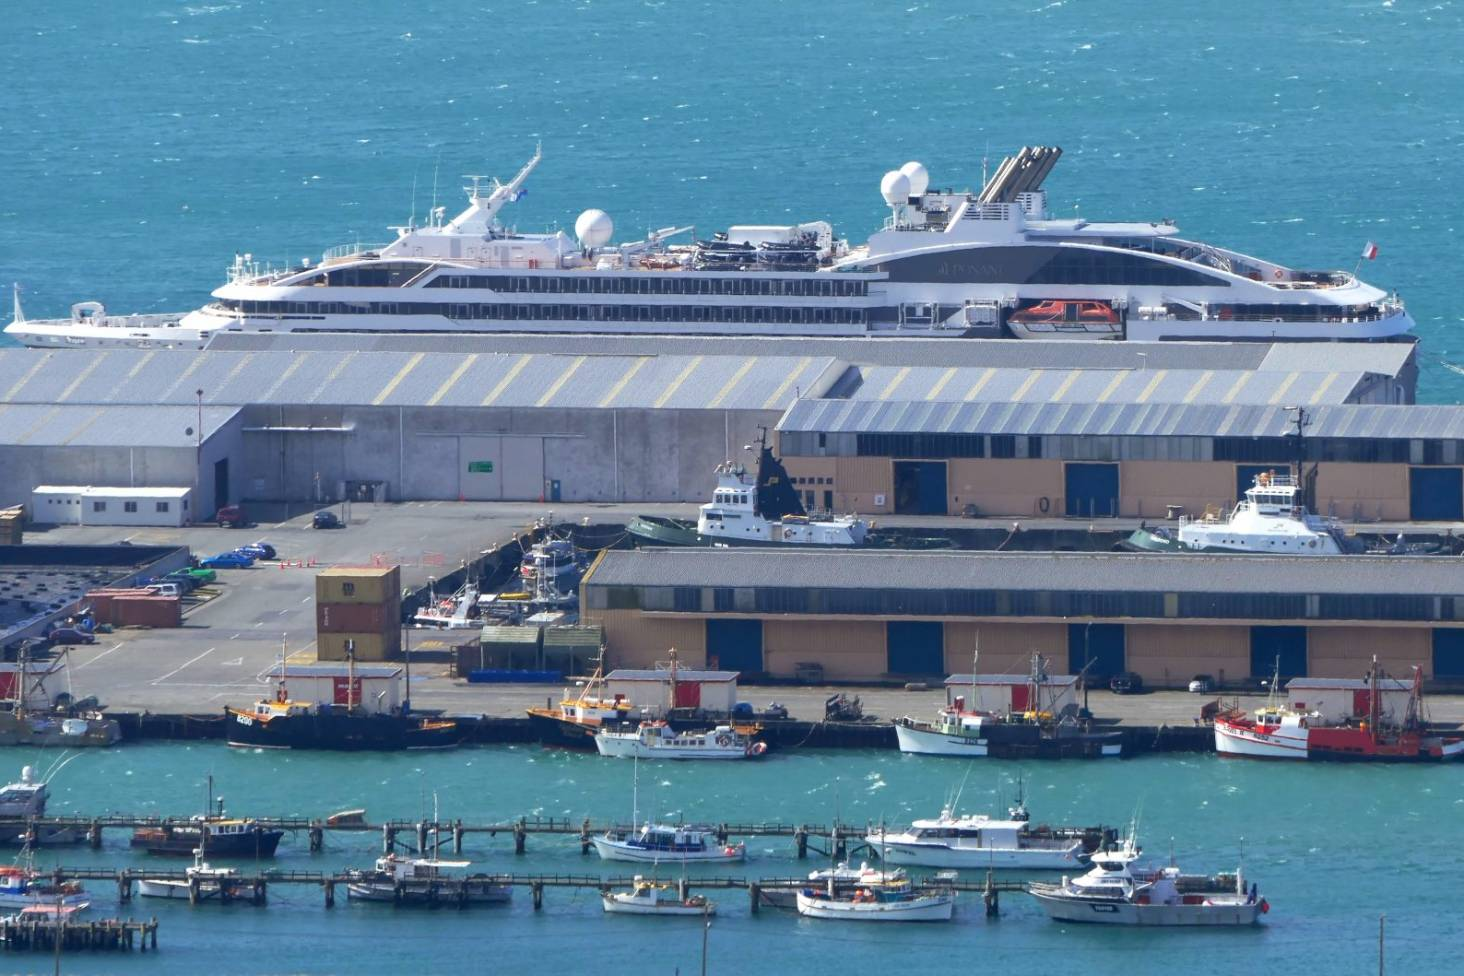 Ms Artania Creating A New Destination For Cruise Ships In Bluff Stuff Co Nz